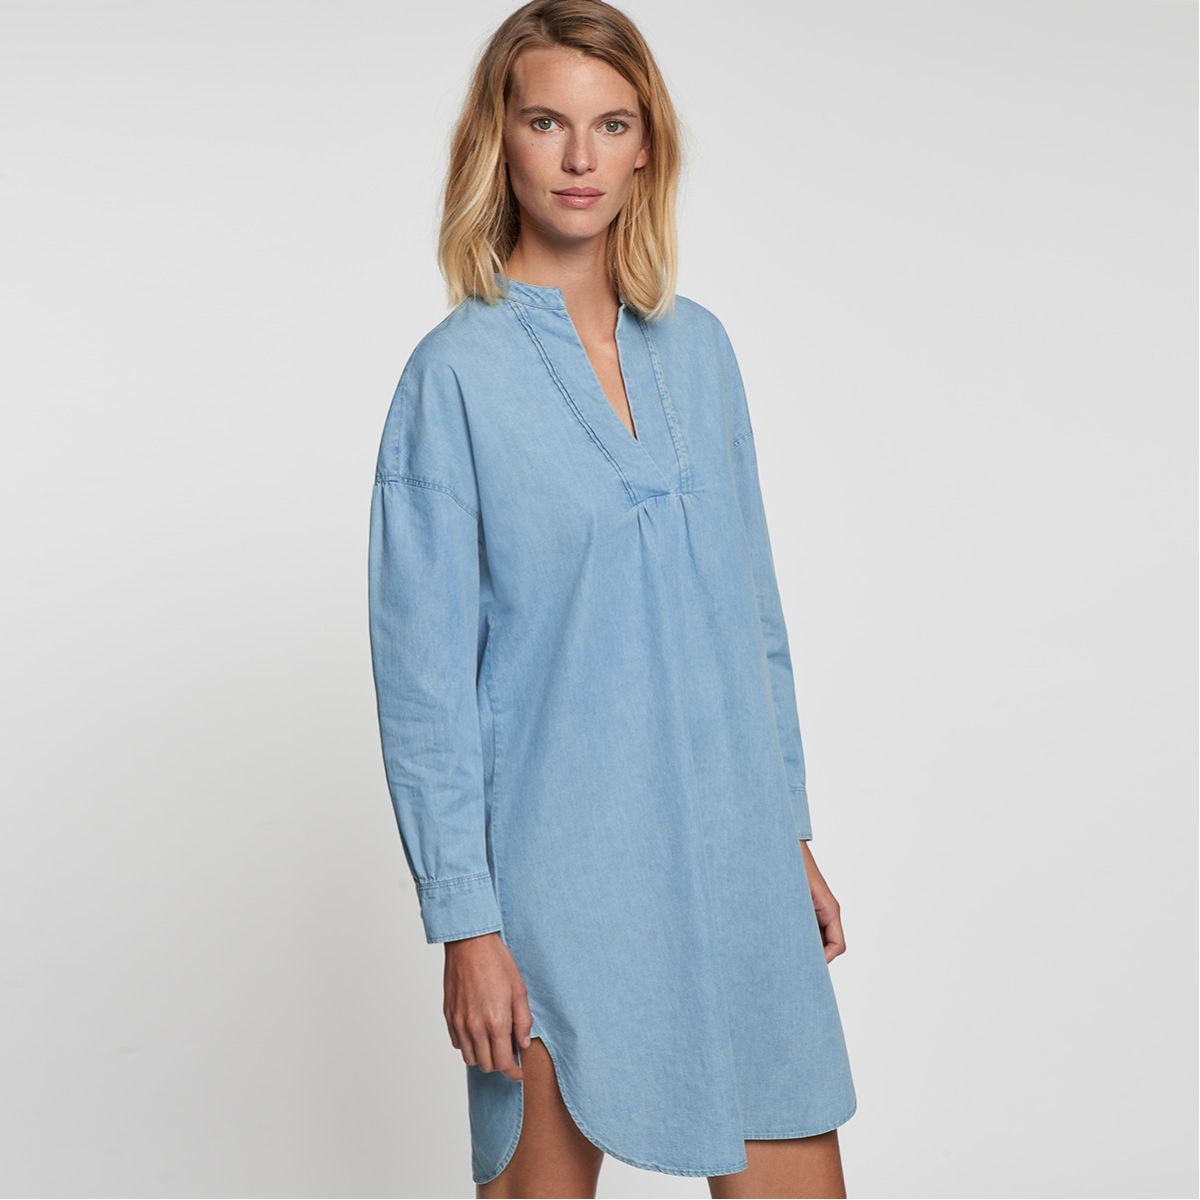 Robe-chemisier denim bleu clair